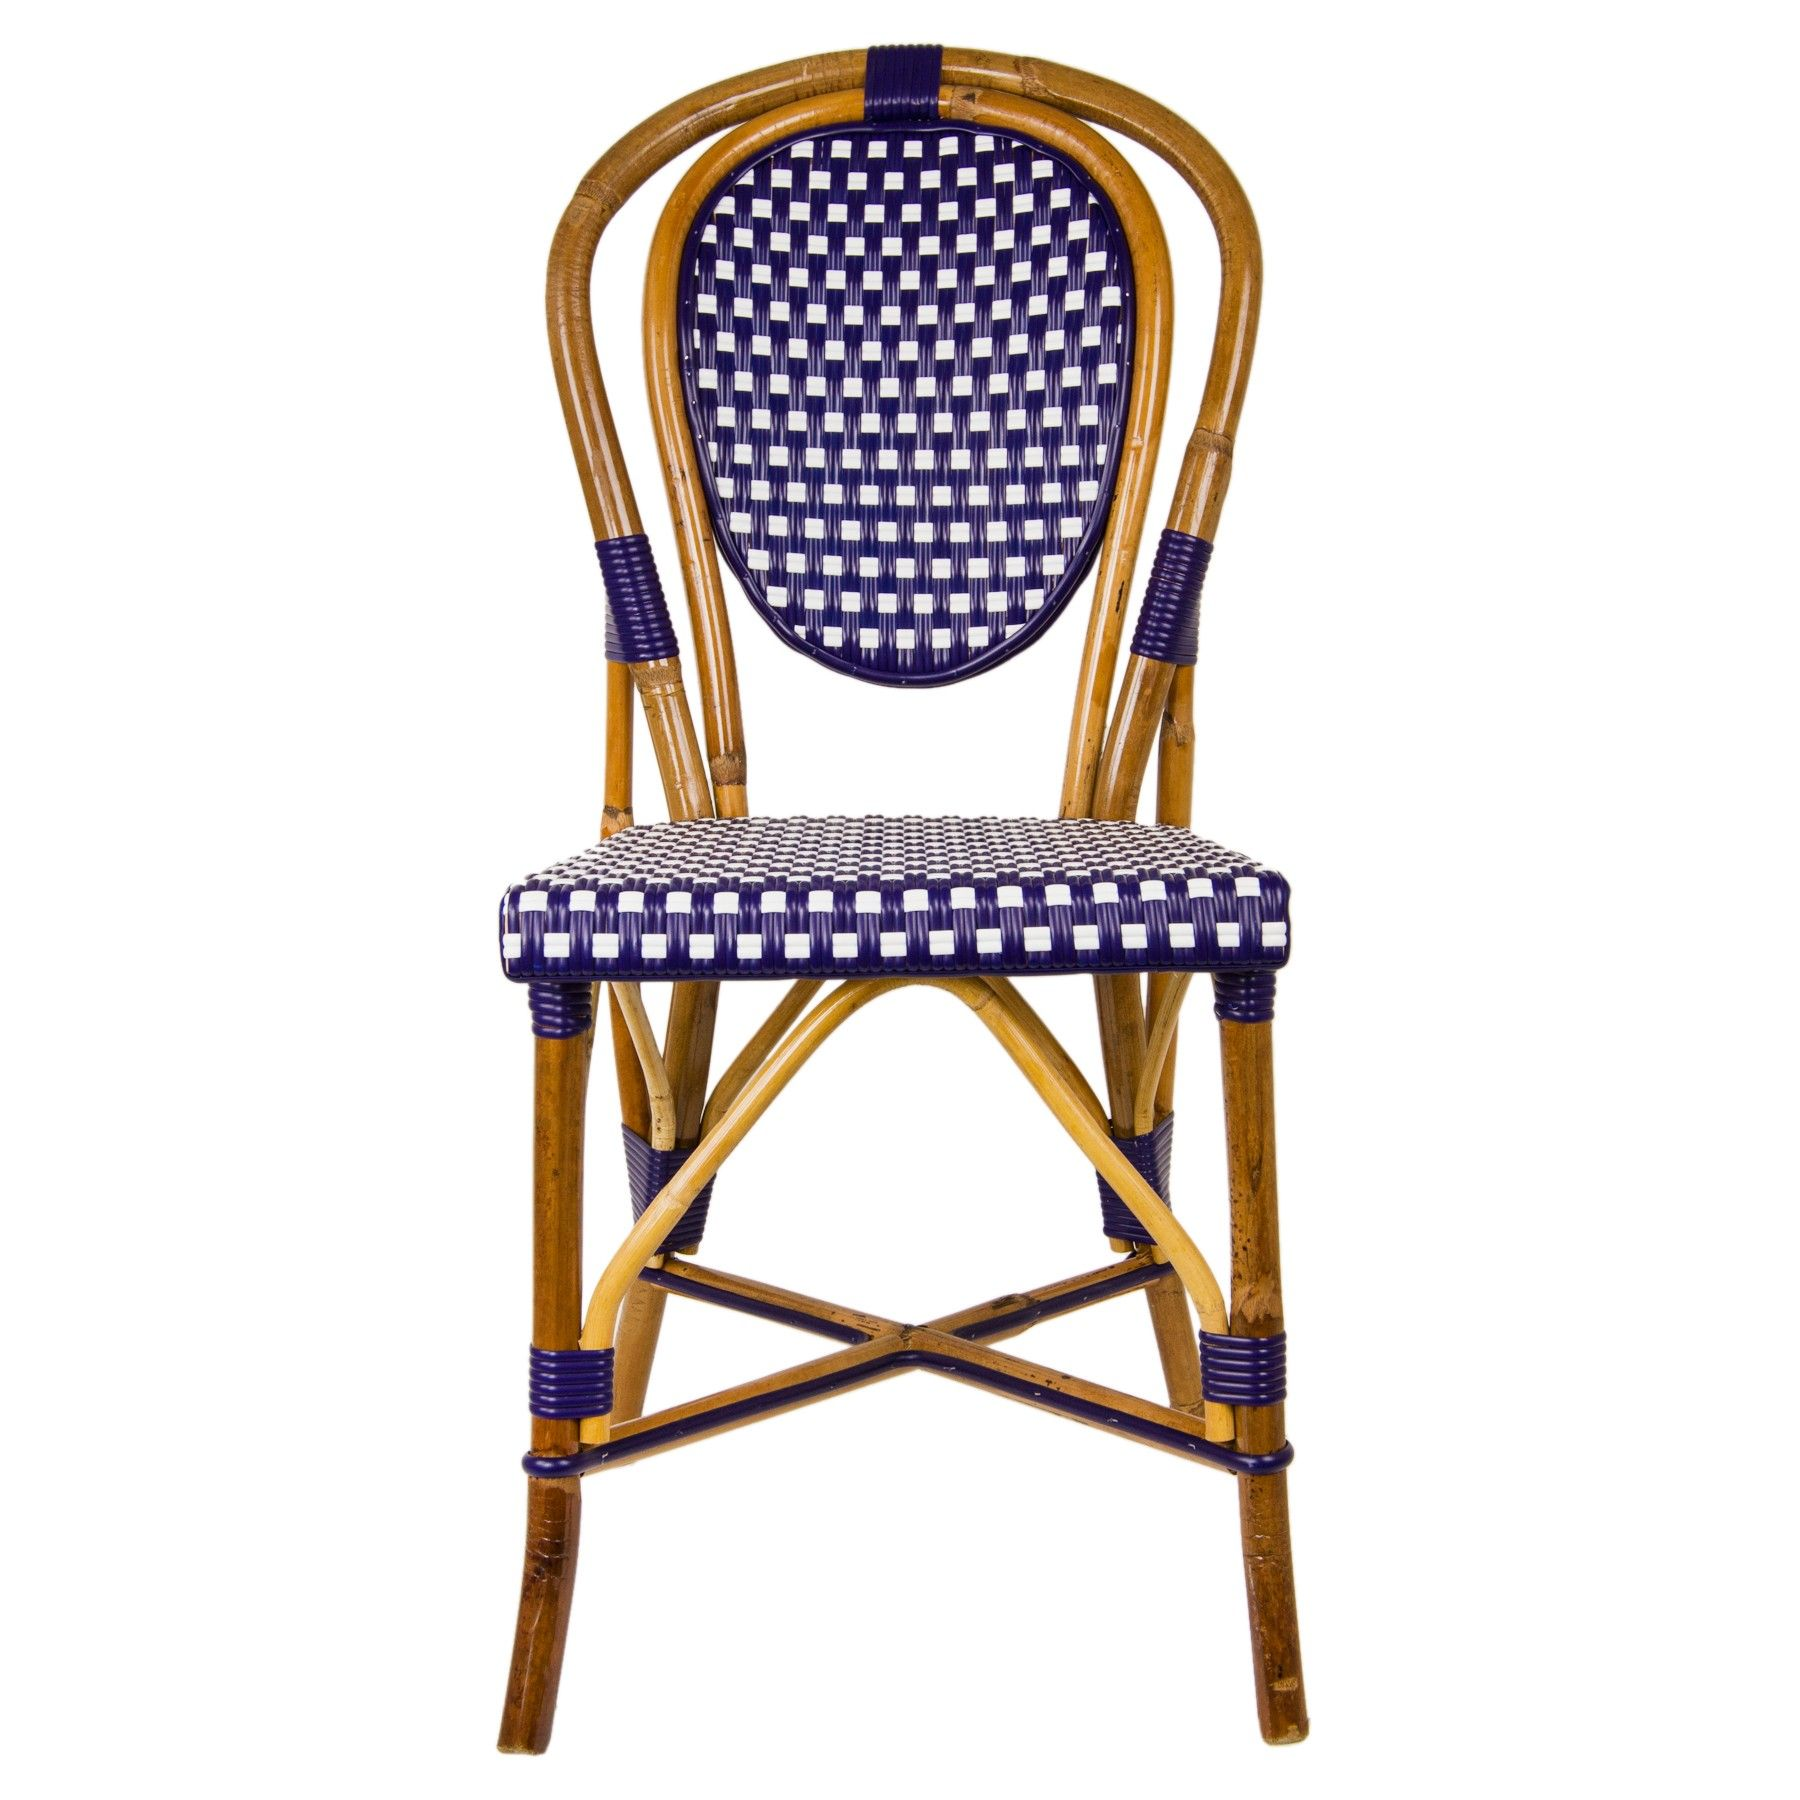 Navy Blue Bistro Chair Price 232.95/November 2014. Our